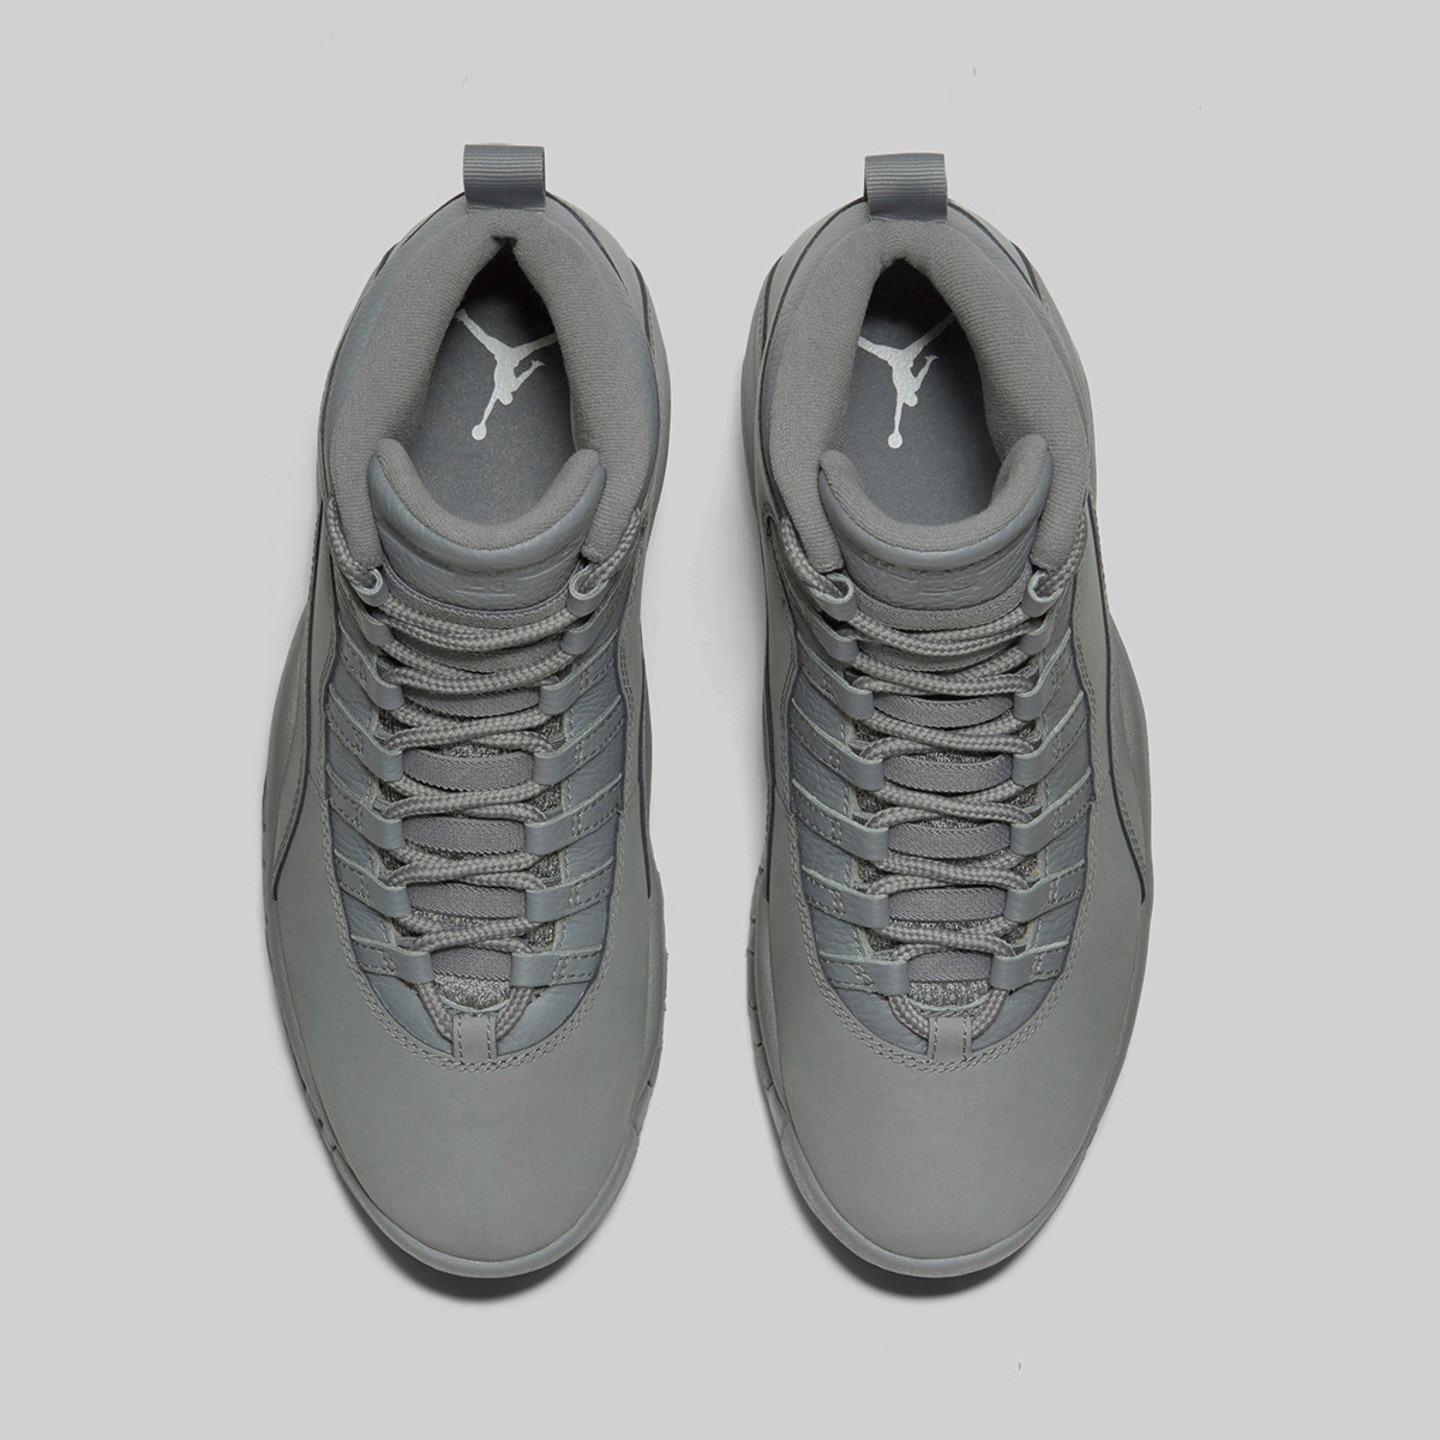 Jordan Air Jordan 10 Retro 'Cool Grey' Cool Grey / White 310805-022